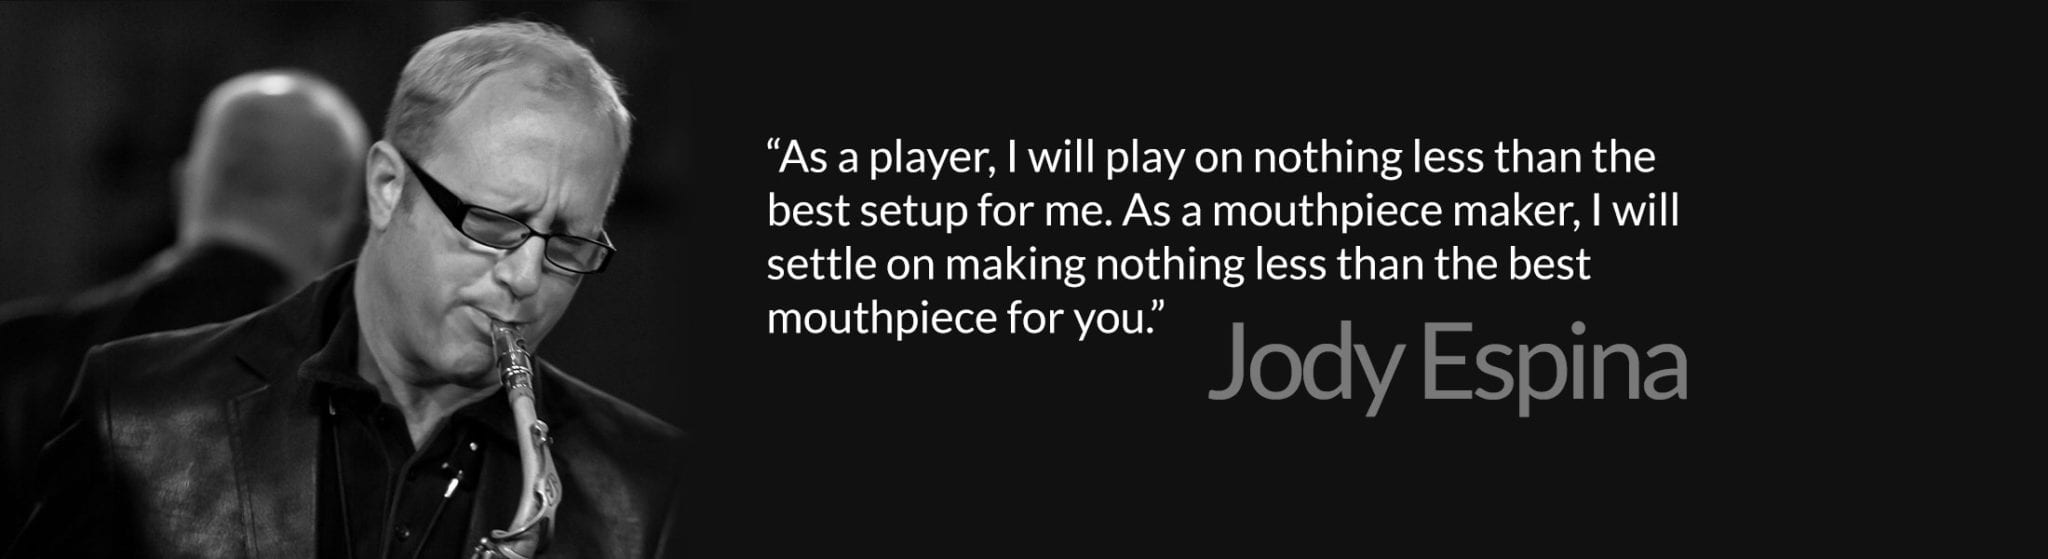 """""""As a player, I will play on nothing less than the best setup for me. As a mouthpiece maker, I will settle on making nothing less than the best mouthpiece for you."""""""